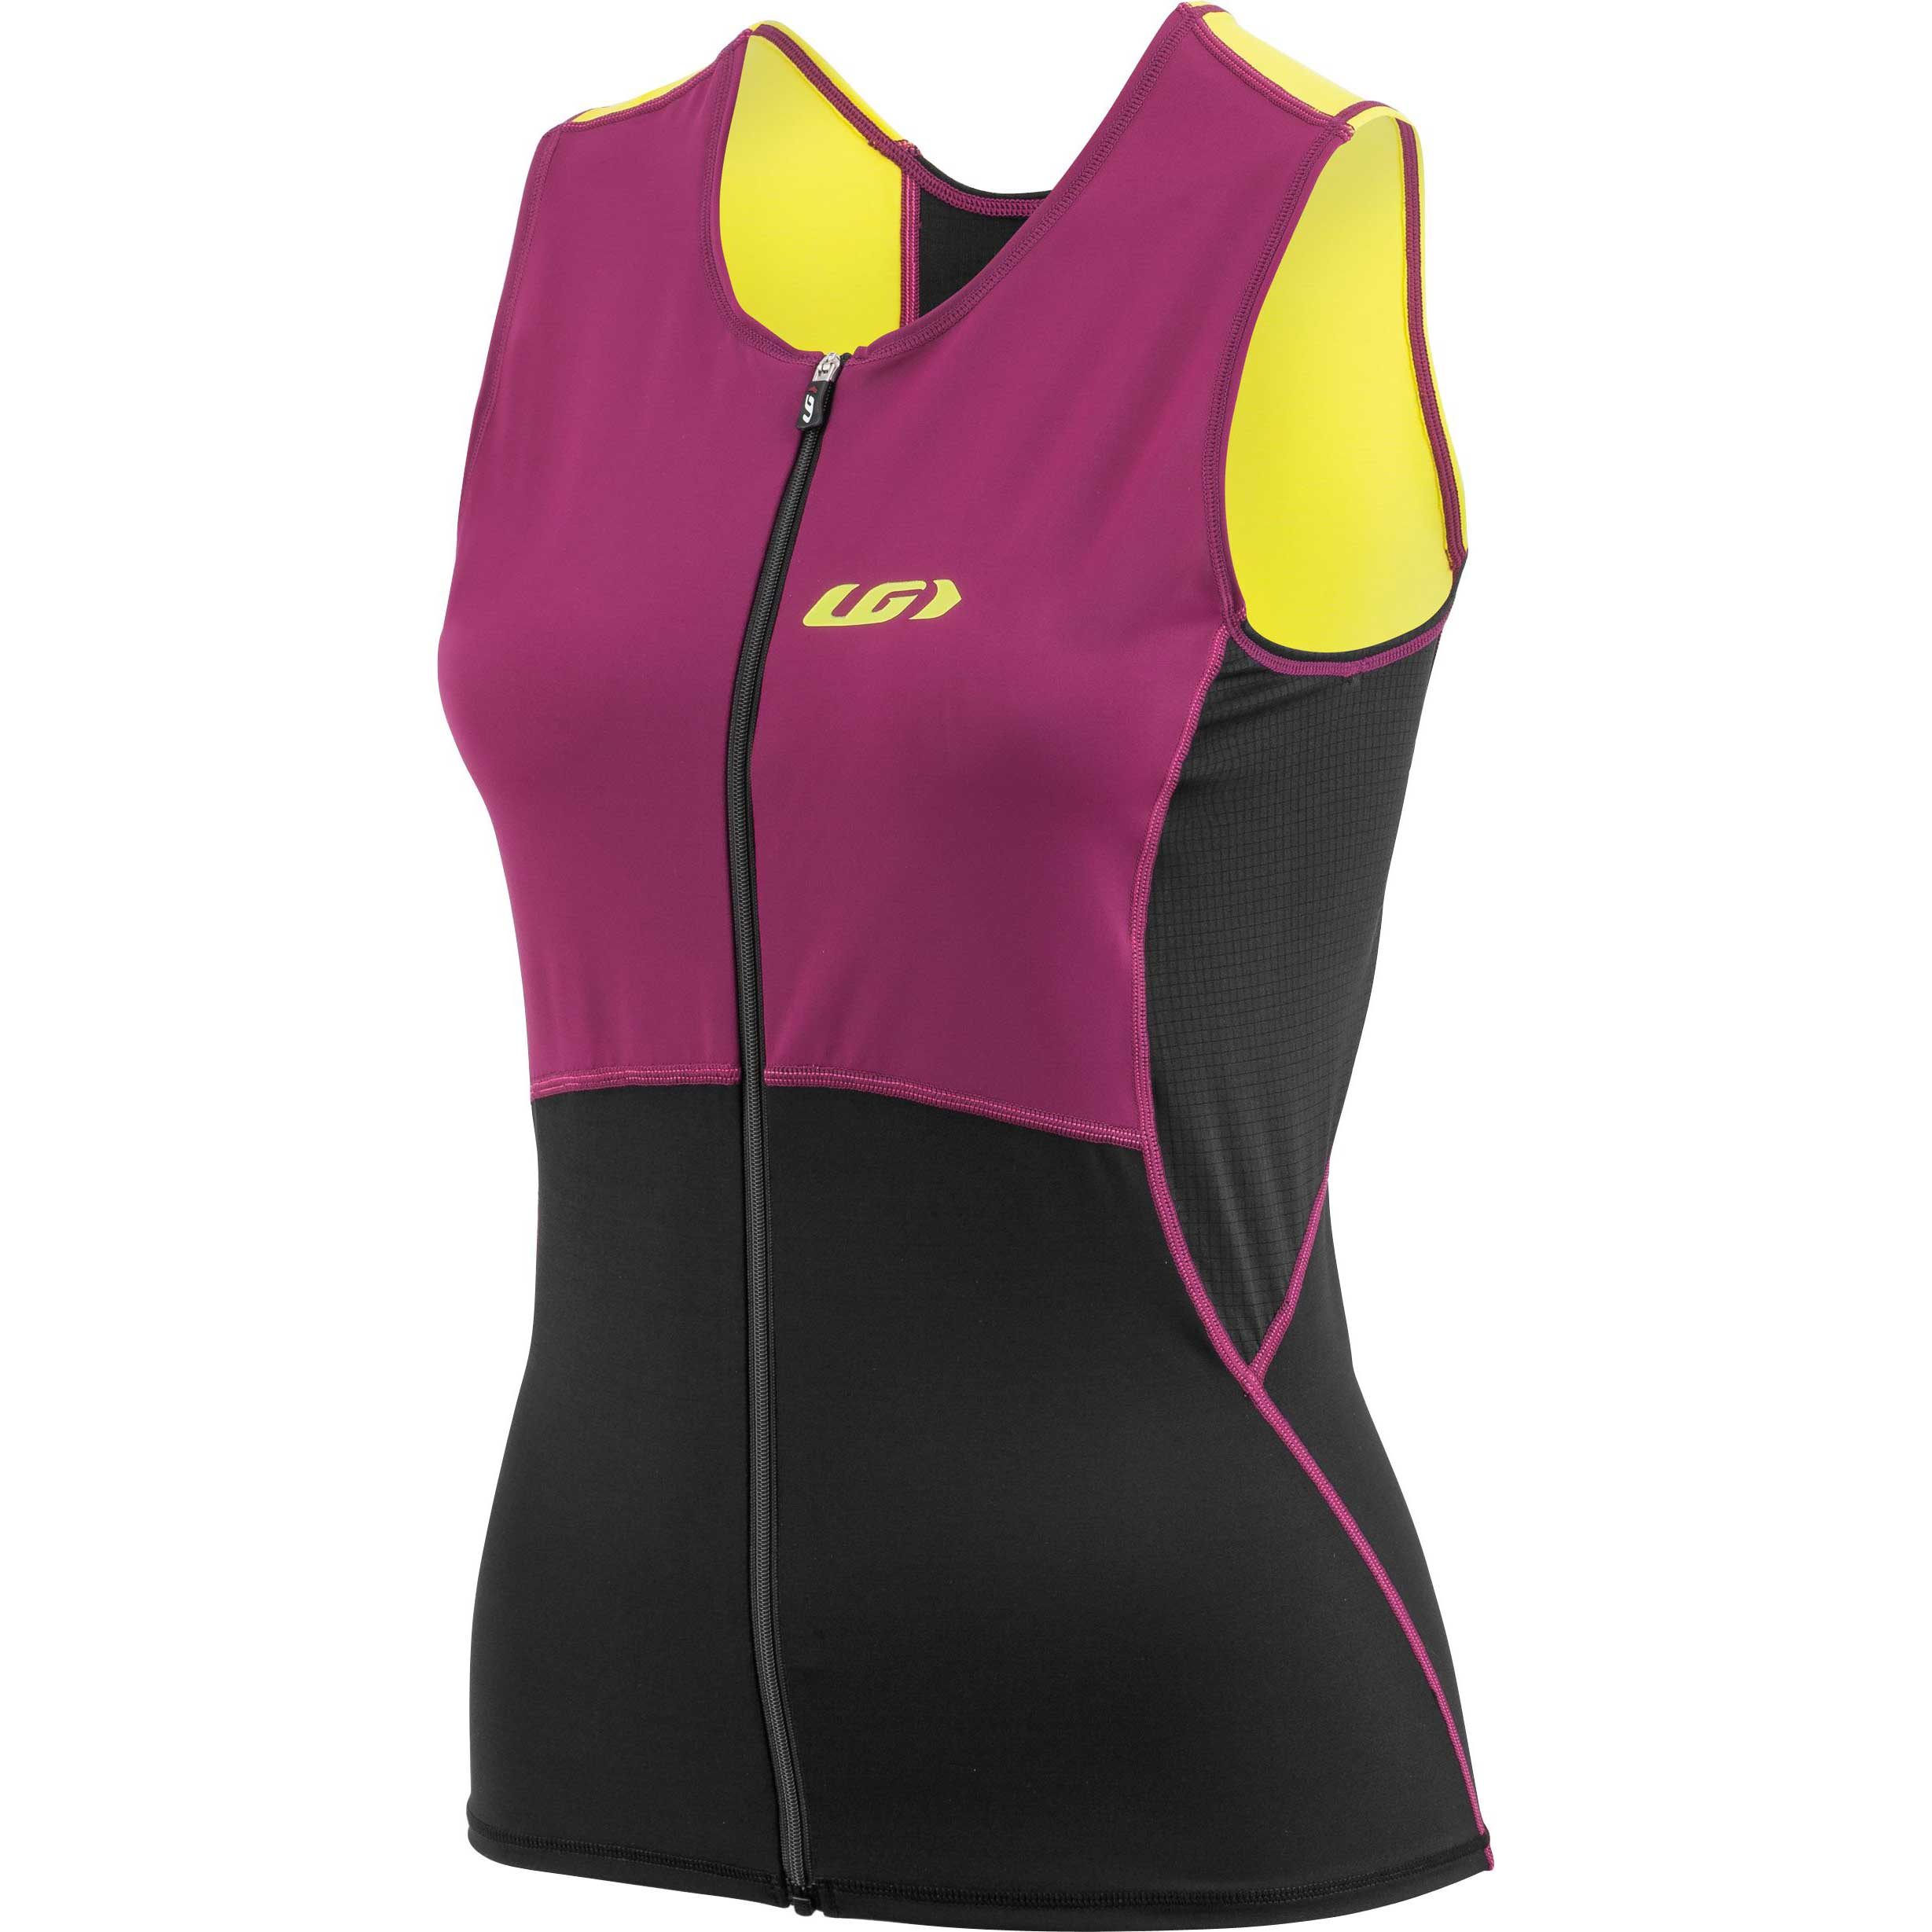 Louis Garneau Womens Tri Comp SL Tri Top